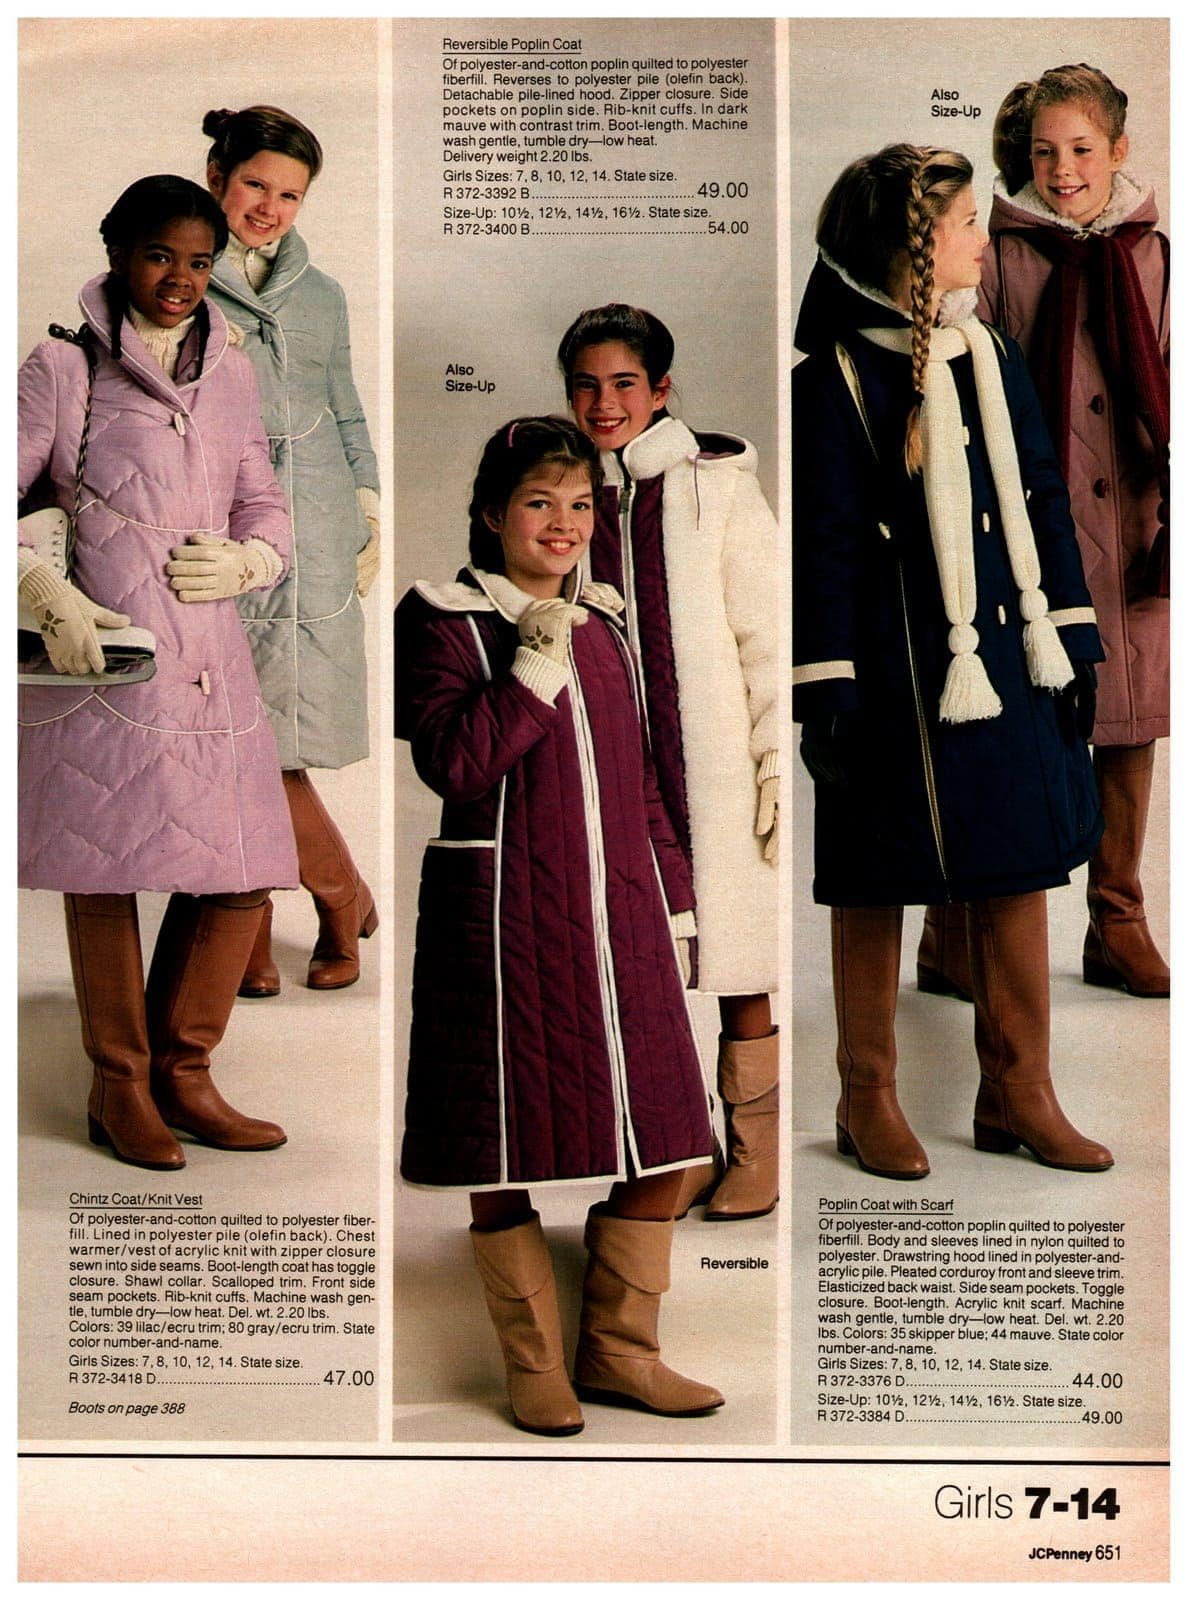 Cozy and warm vintage outerwear for girls - coats, jackets and vests